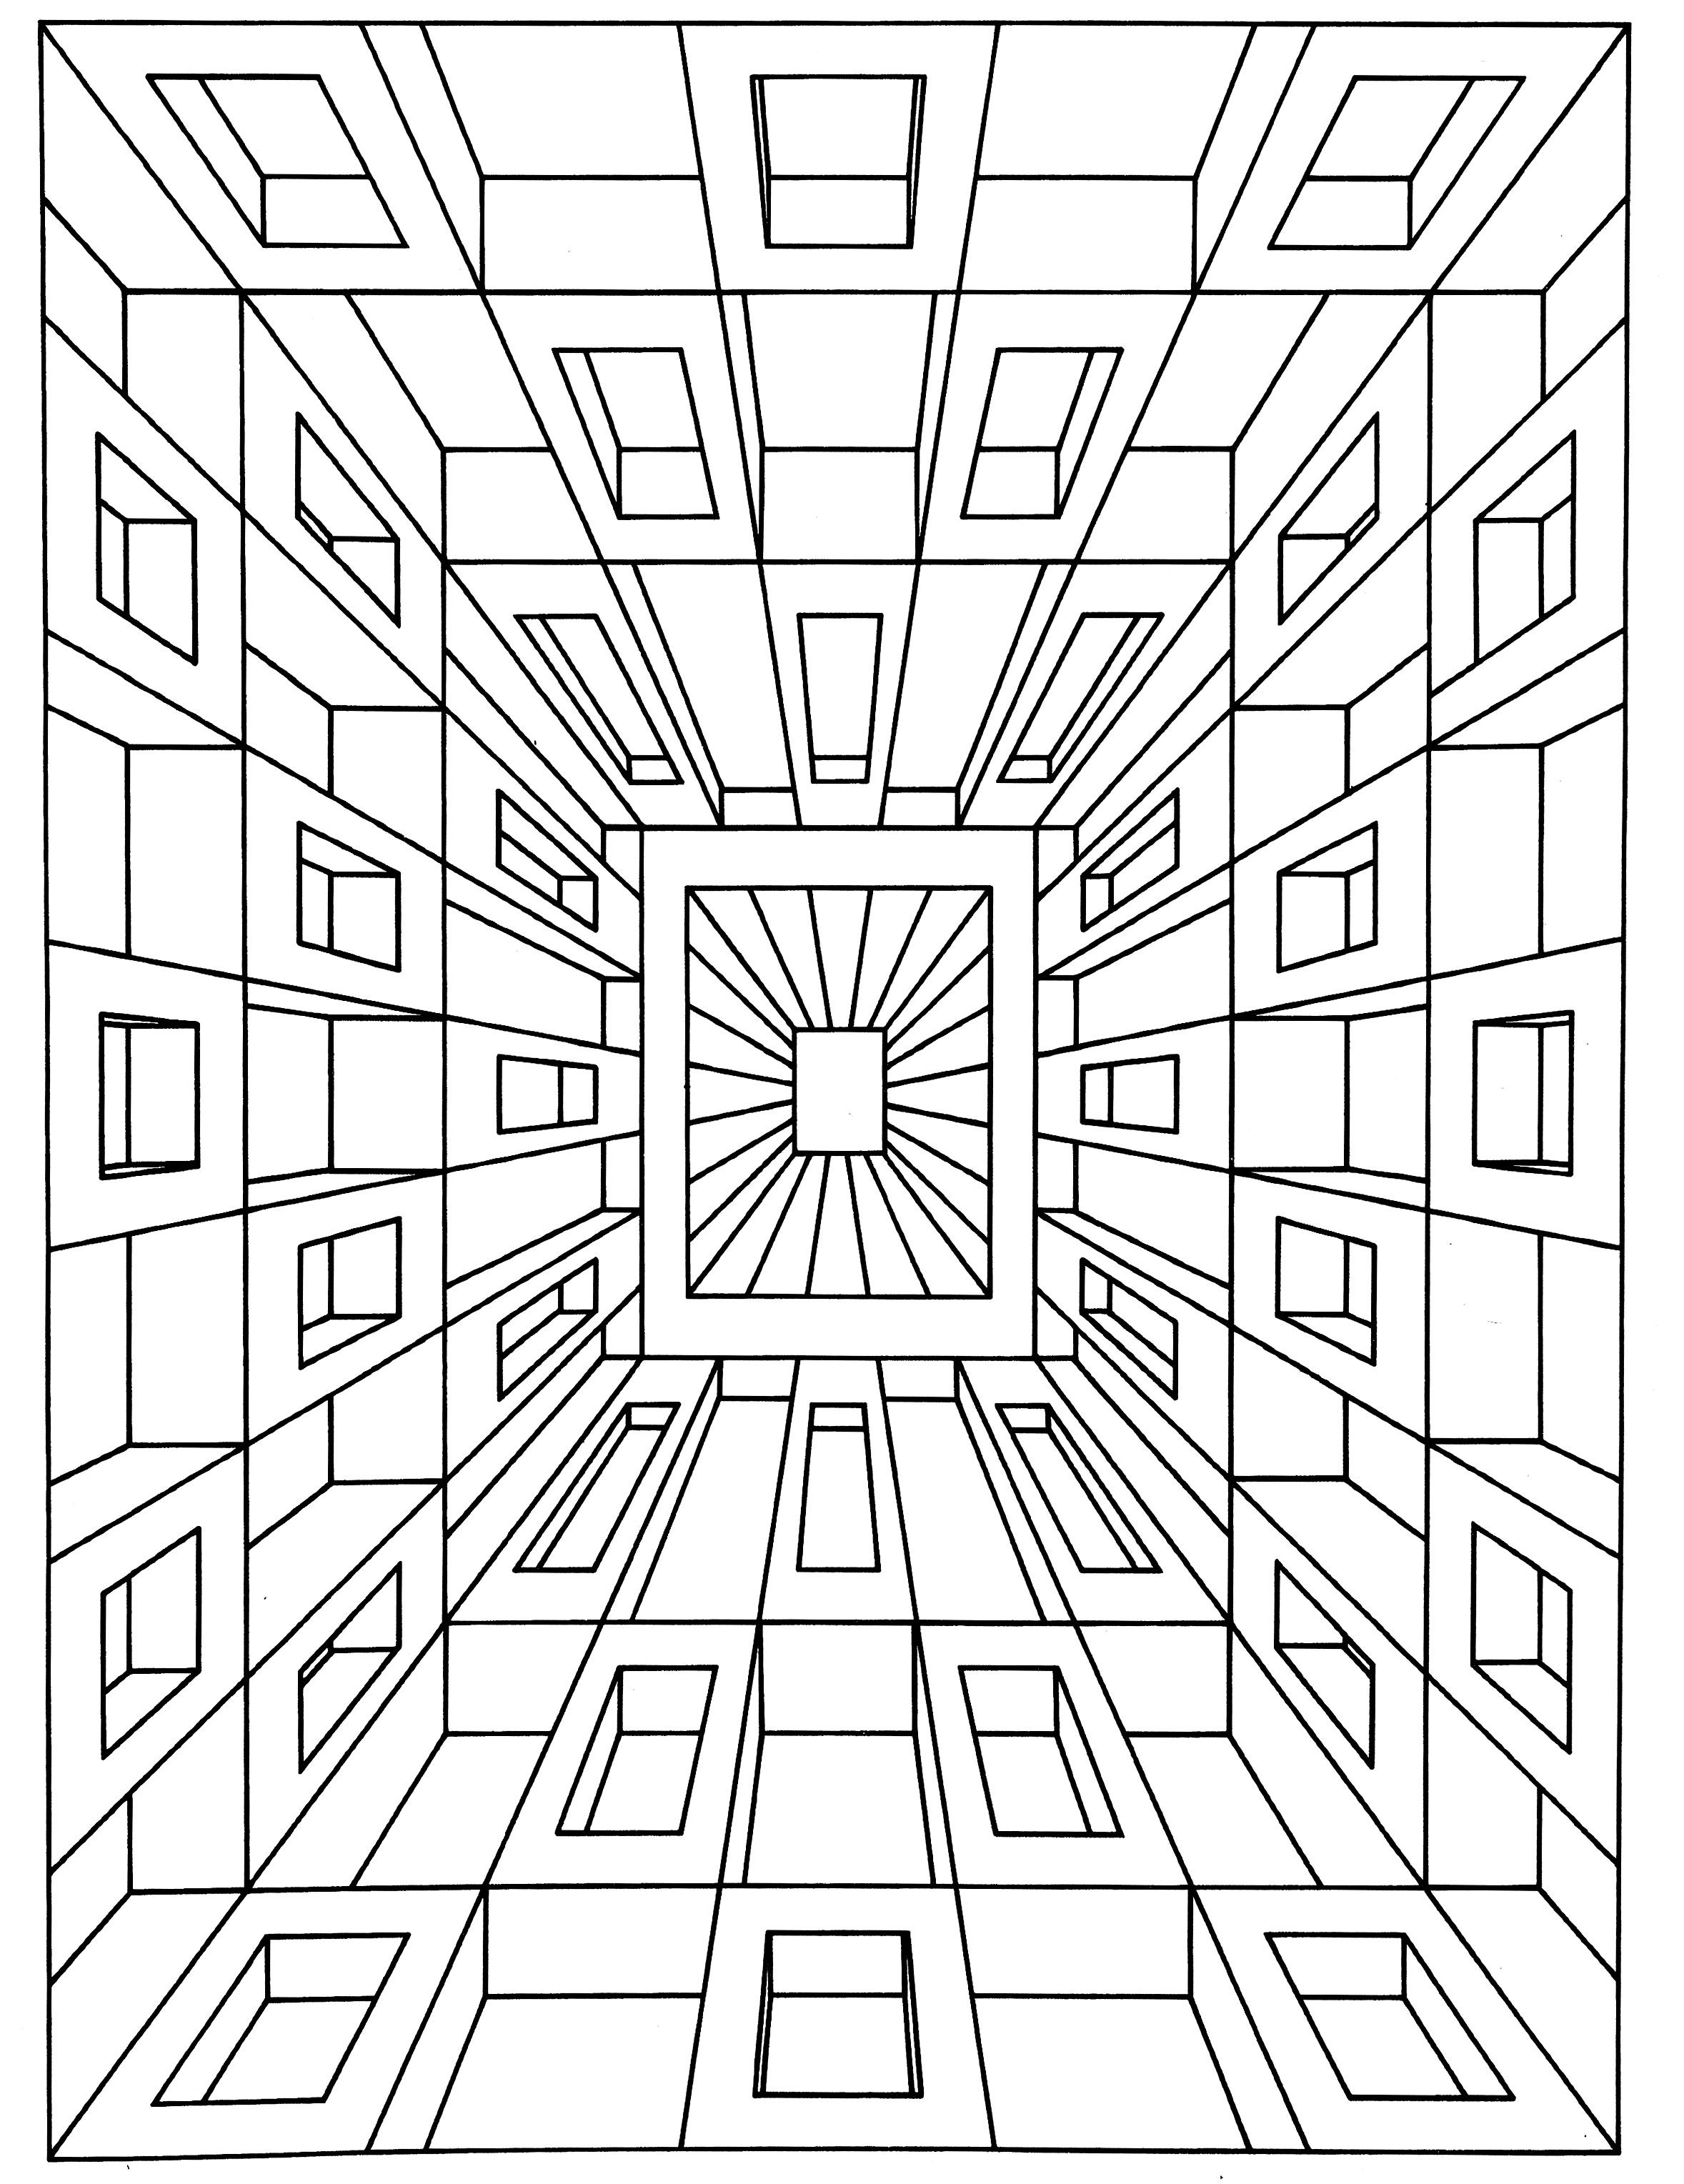 tessellations coloring pages tessellation patterns coloring pages coloring home pages tessellations coloring